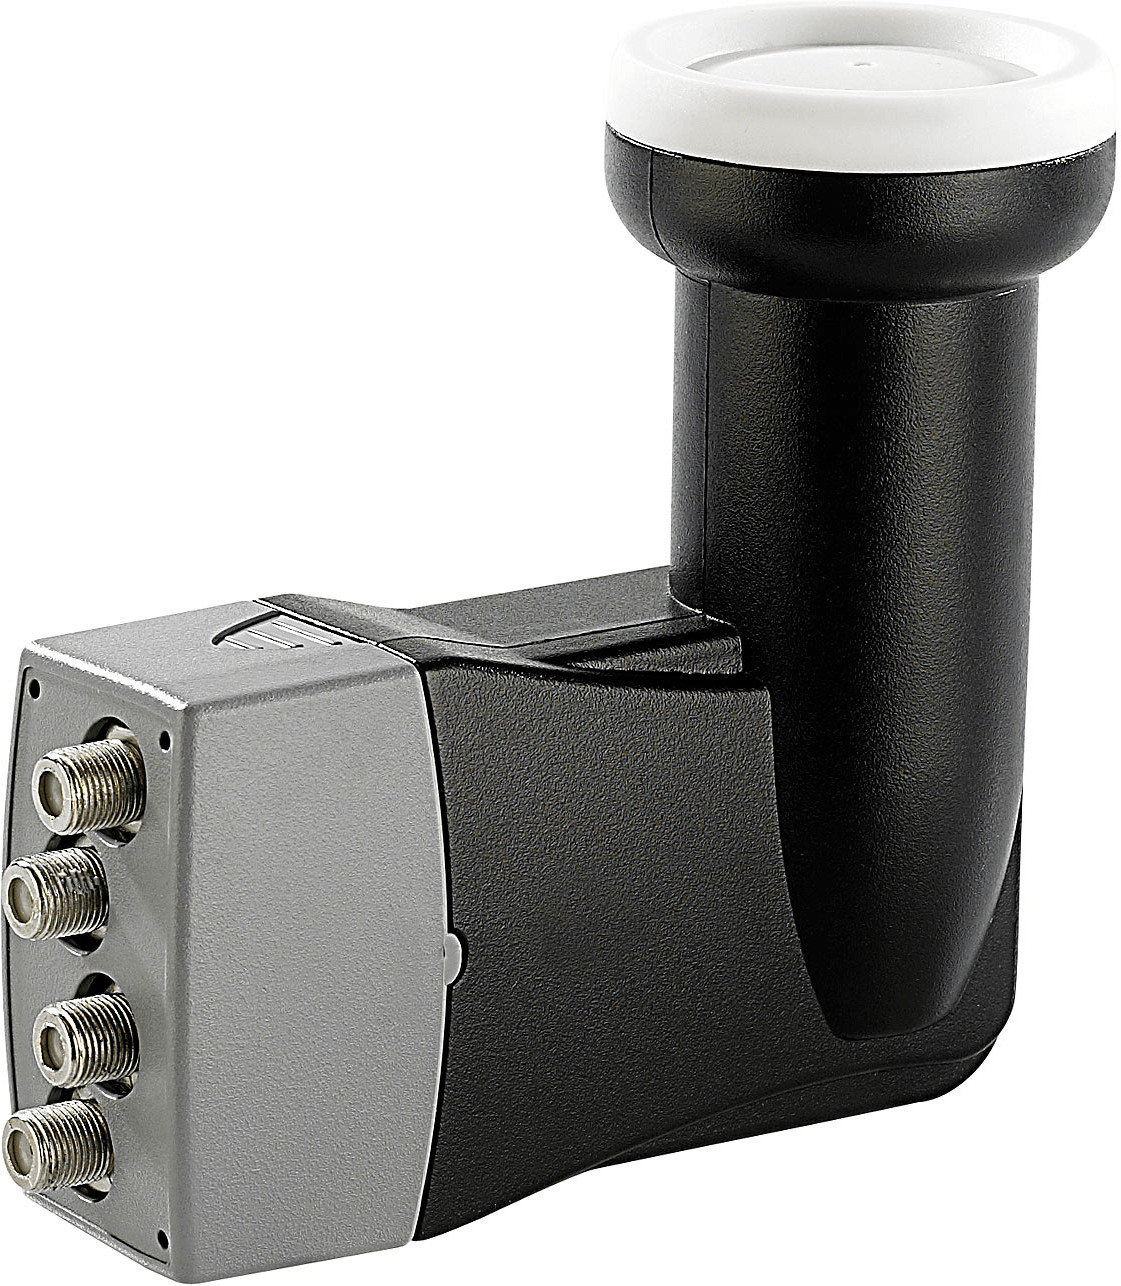 Q-Sonic Universal-QUAD-Switch-LNB für digitales...